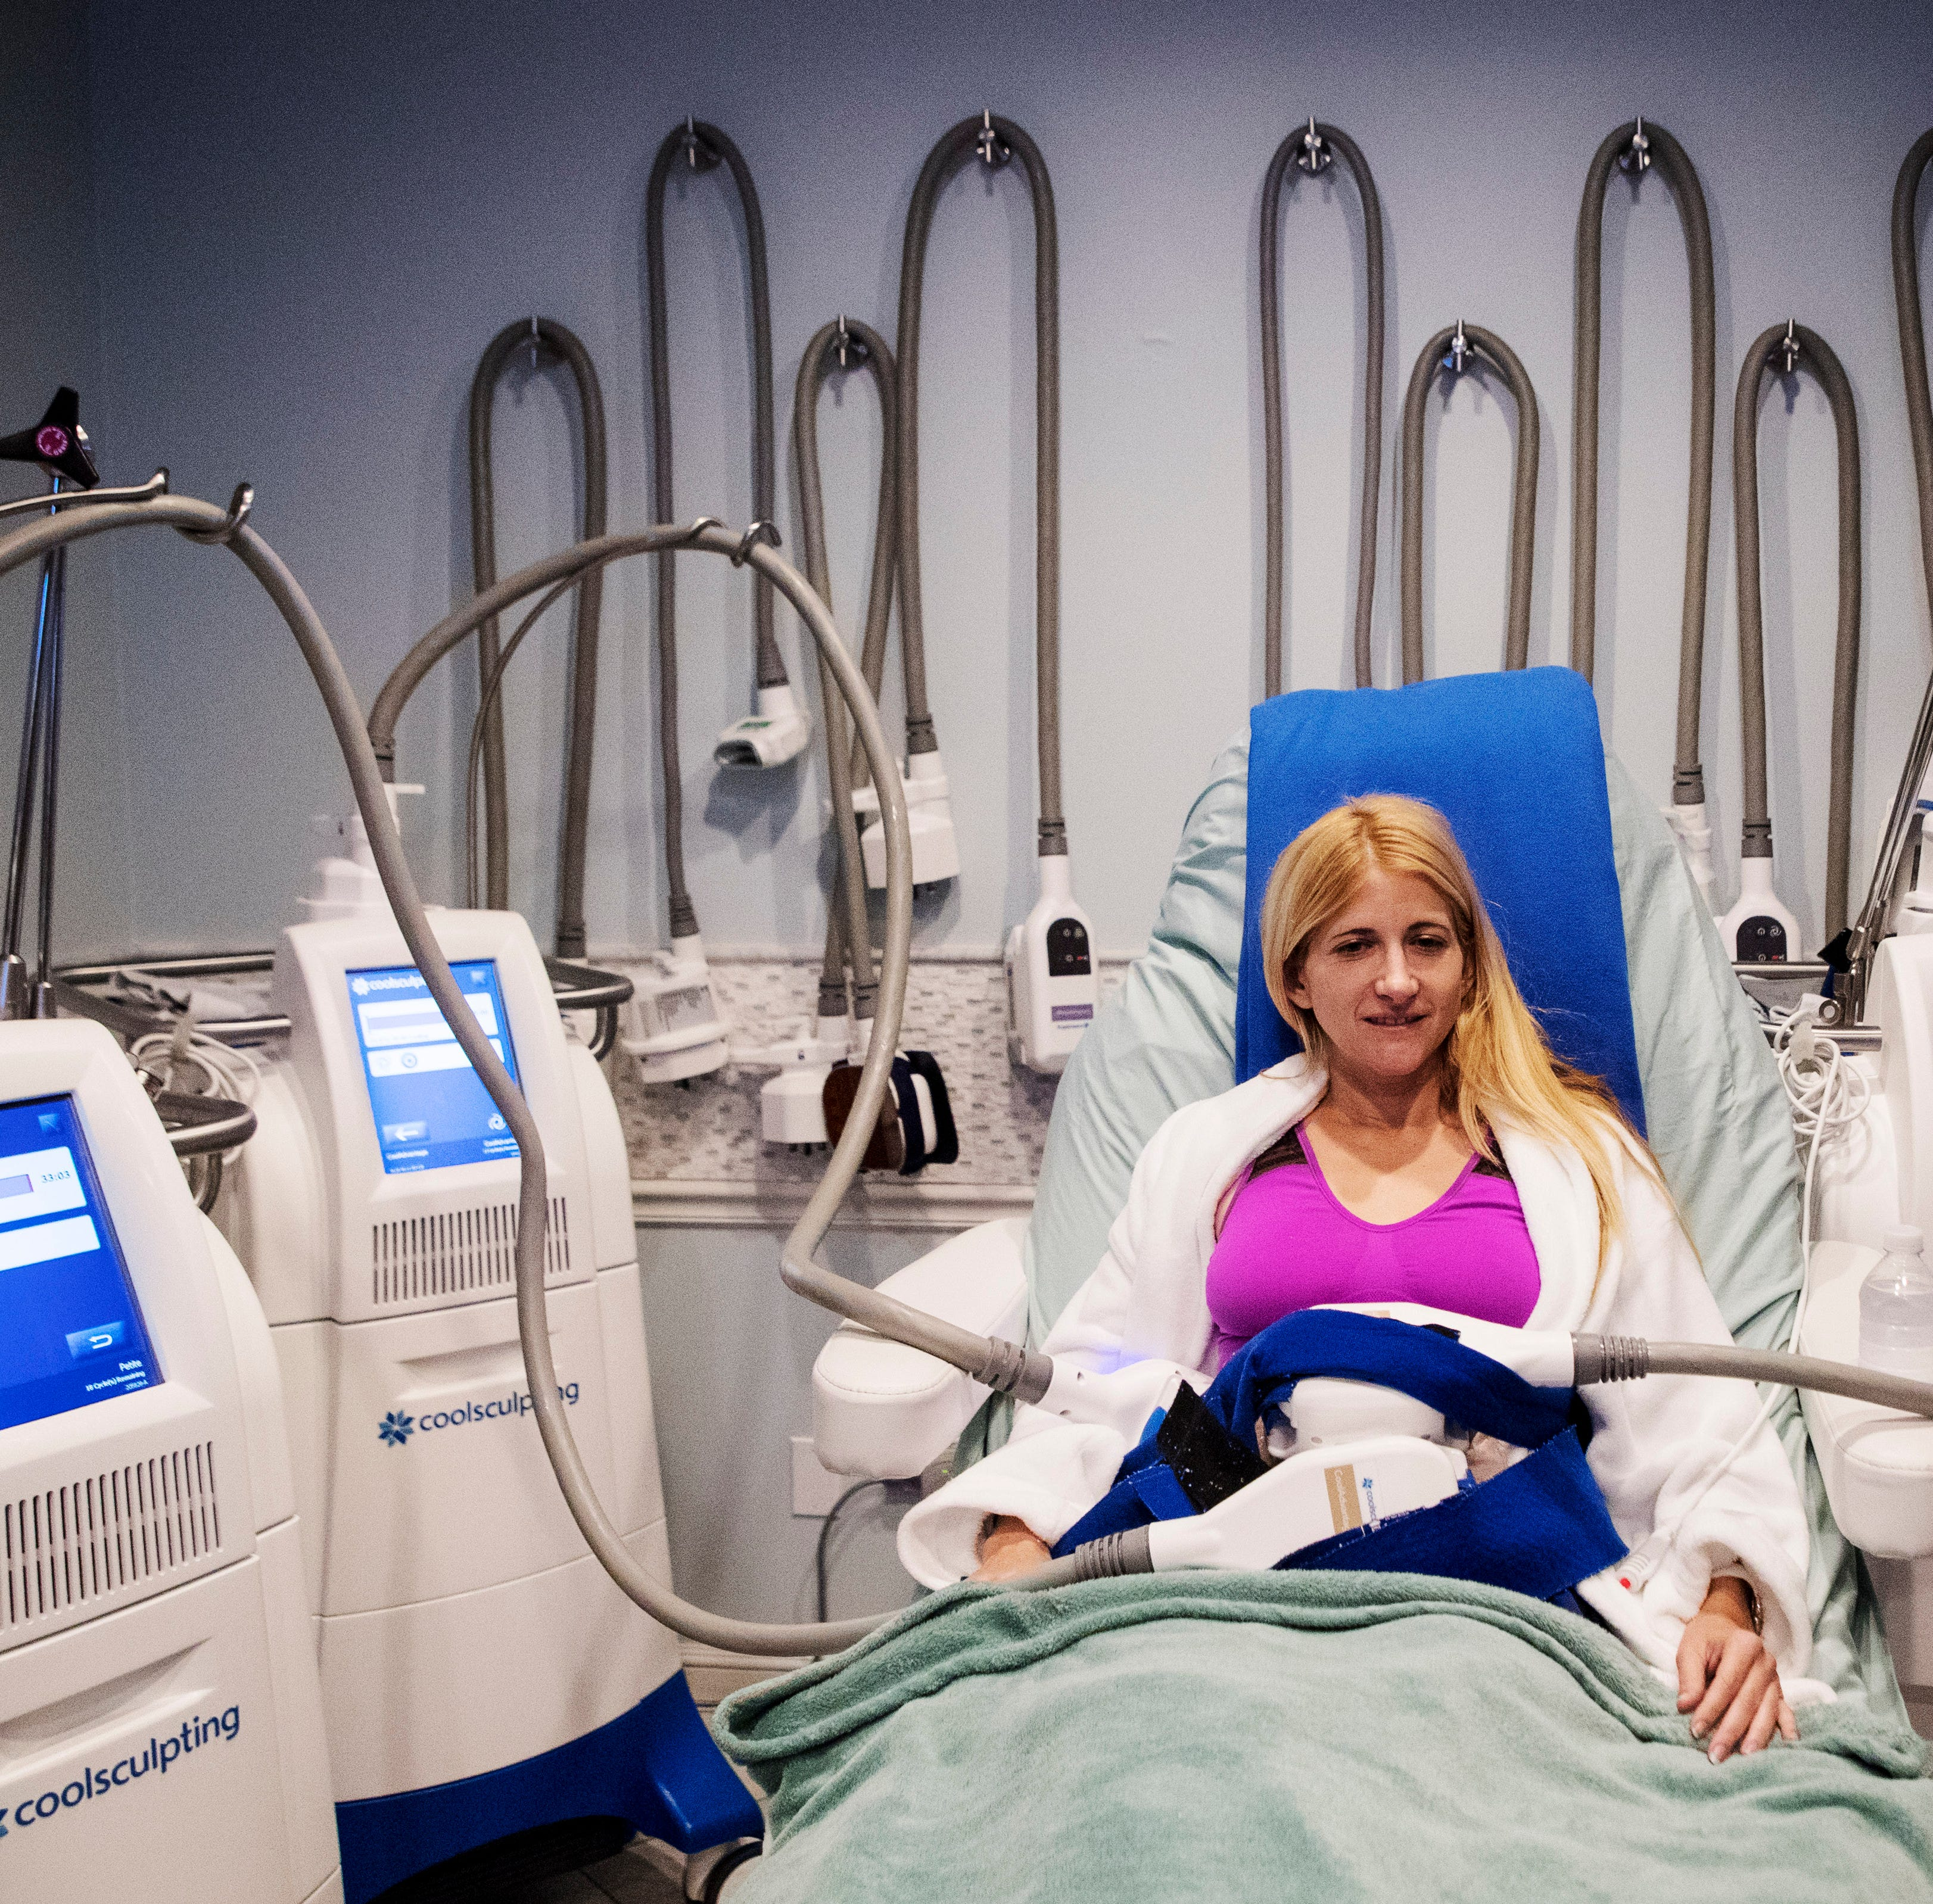 Healthy Bod: How does CoolSculpting work? We visit Pura Vida Med Spa in Naples to find out